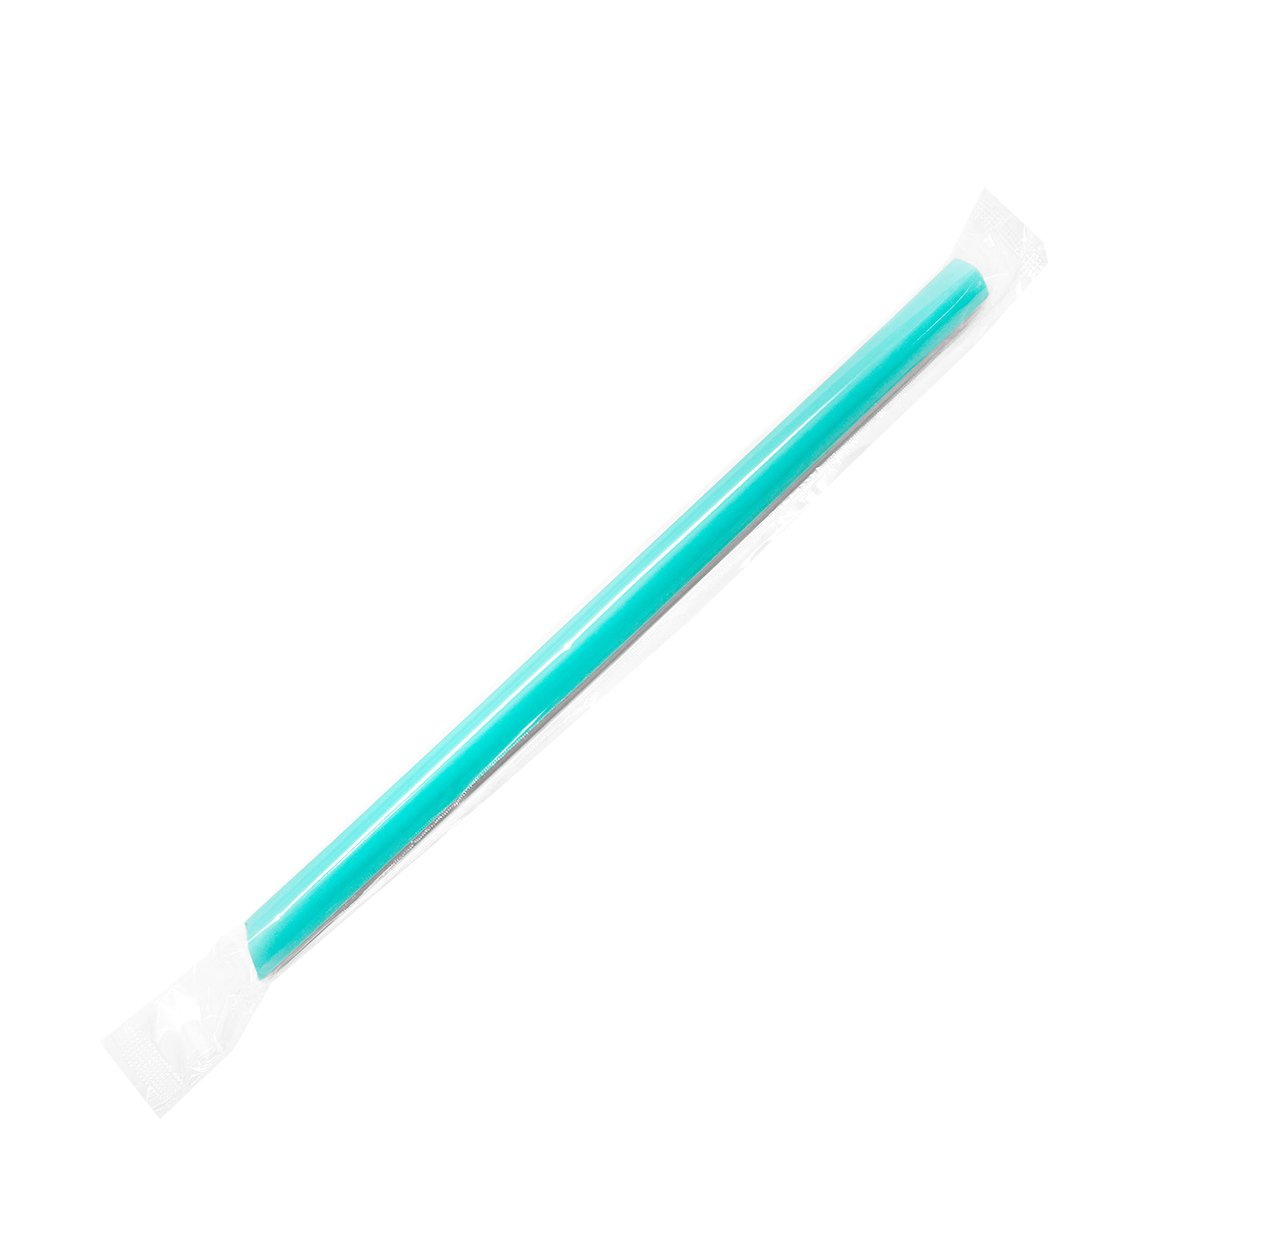 Karat C9060s 9'' Boba Straws(10mm Diameter), Poly-Wrapped, Assorted Solid Colors (Case of 1600)